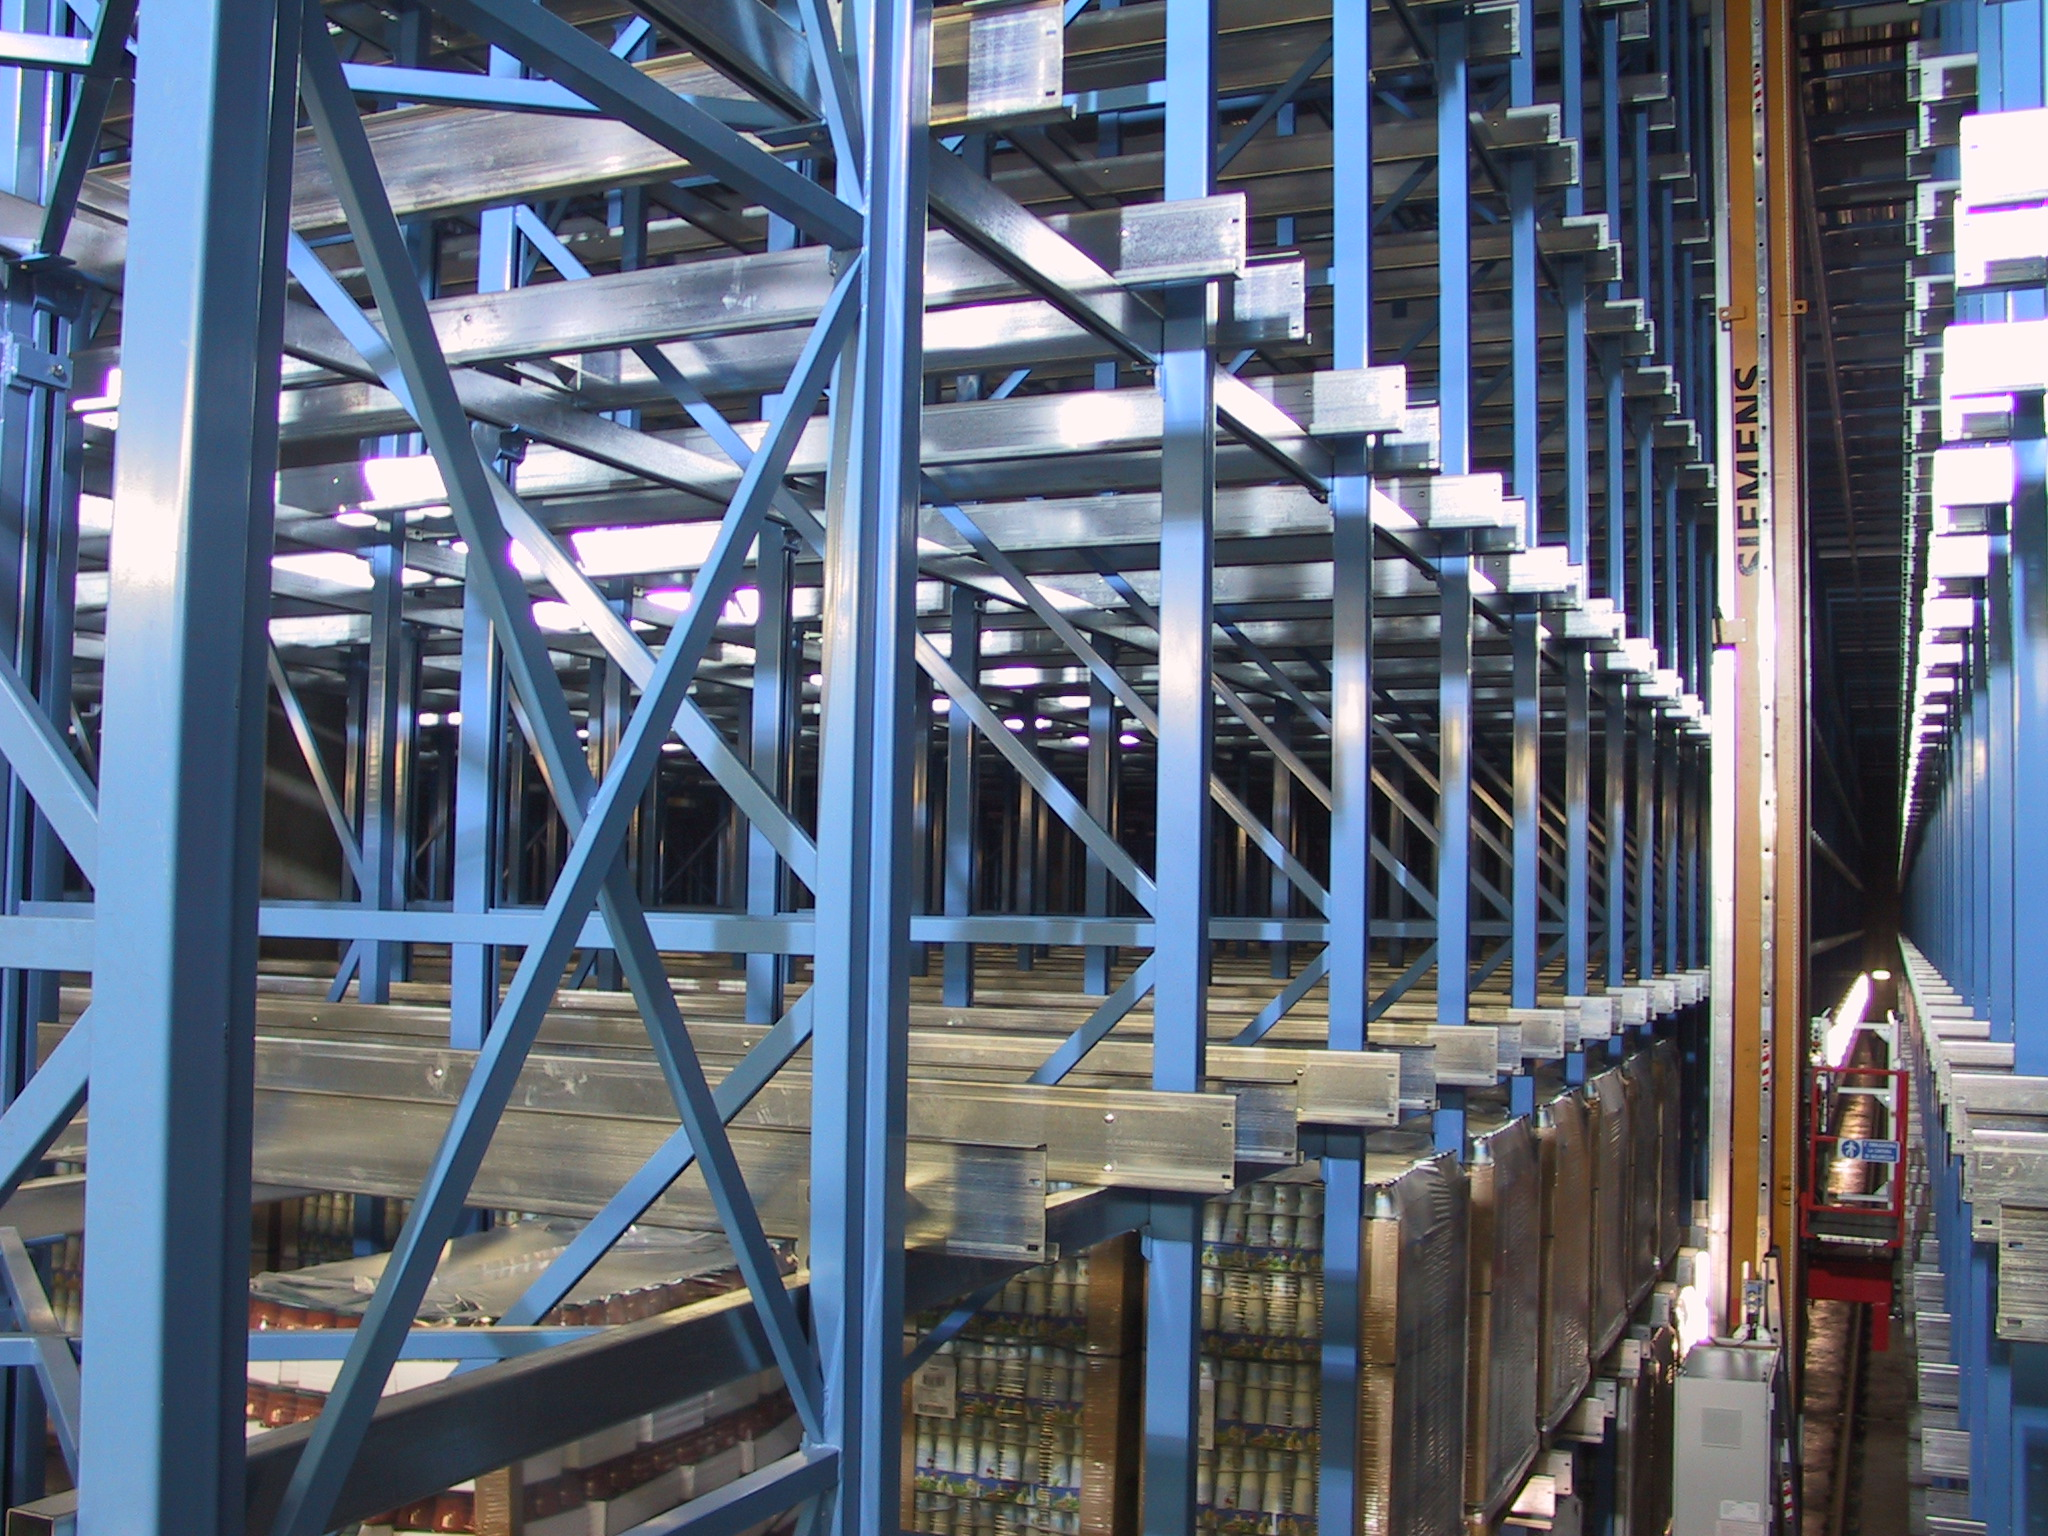 Structures for automated warehouses